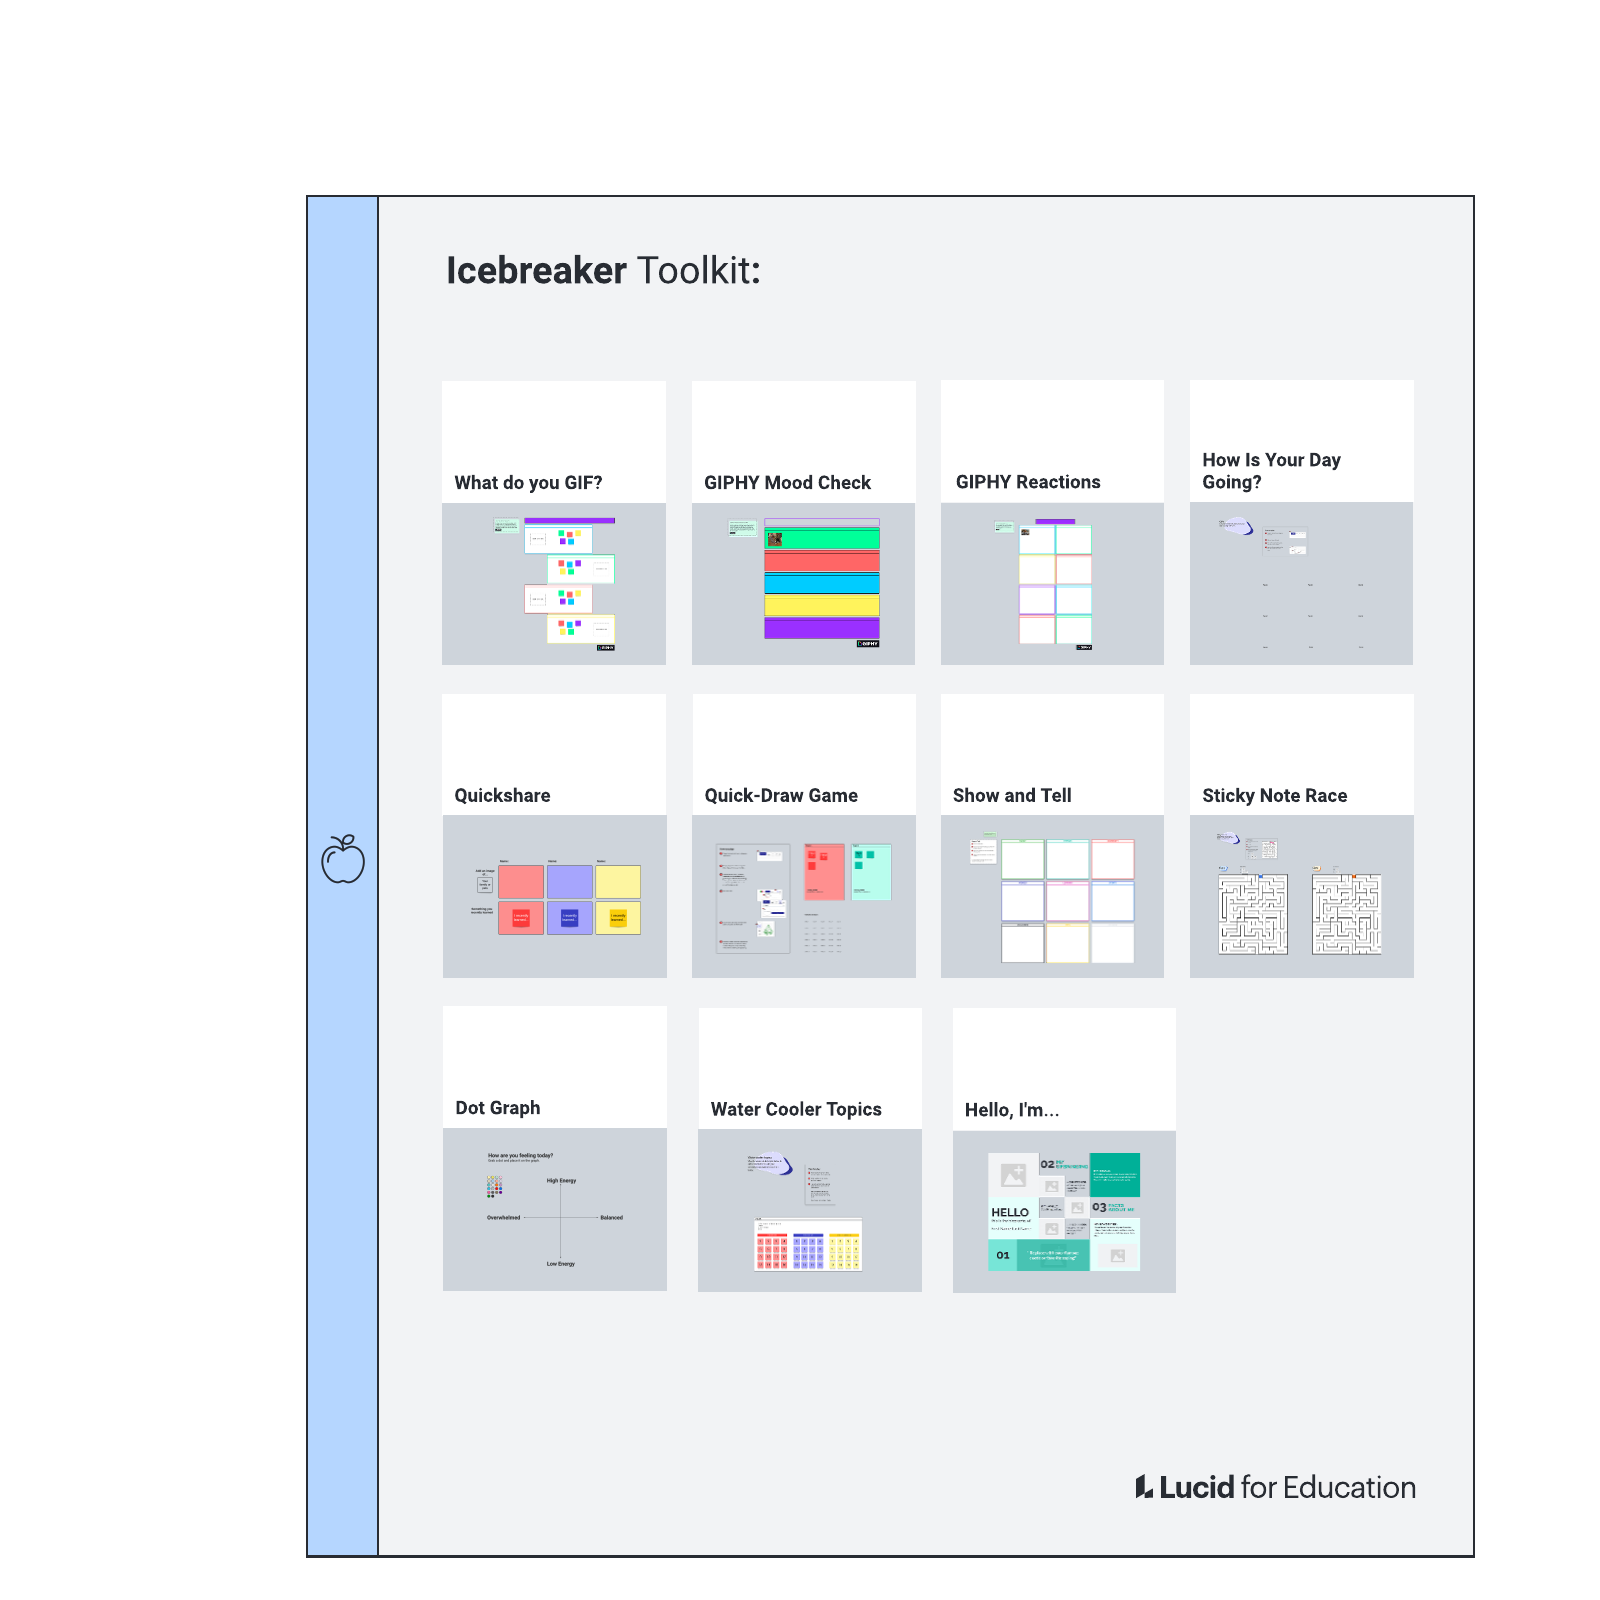 Icebreaker (Get to know you) Toolkit